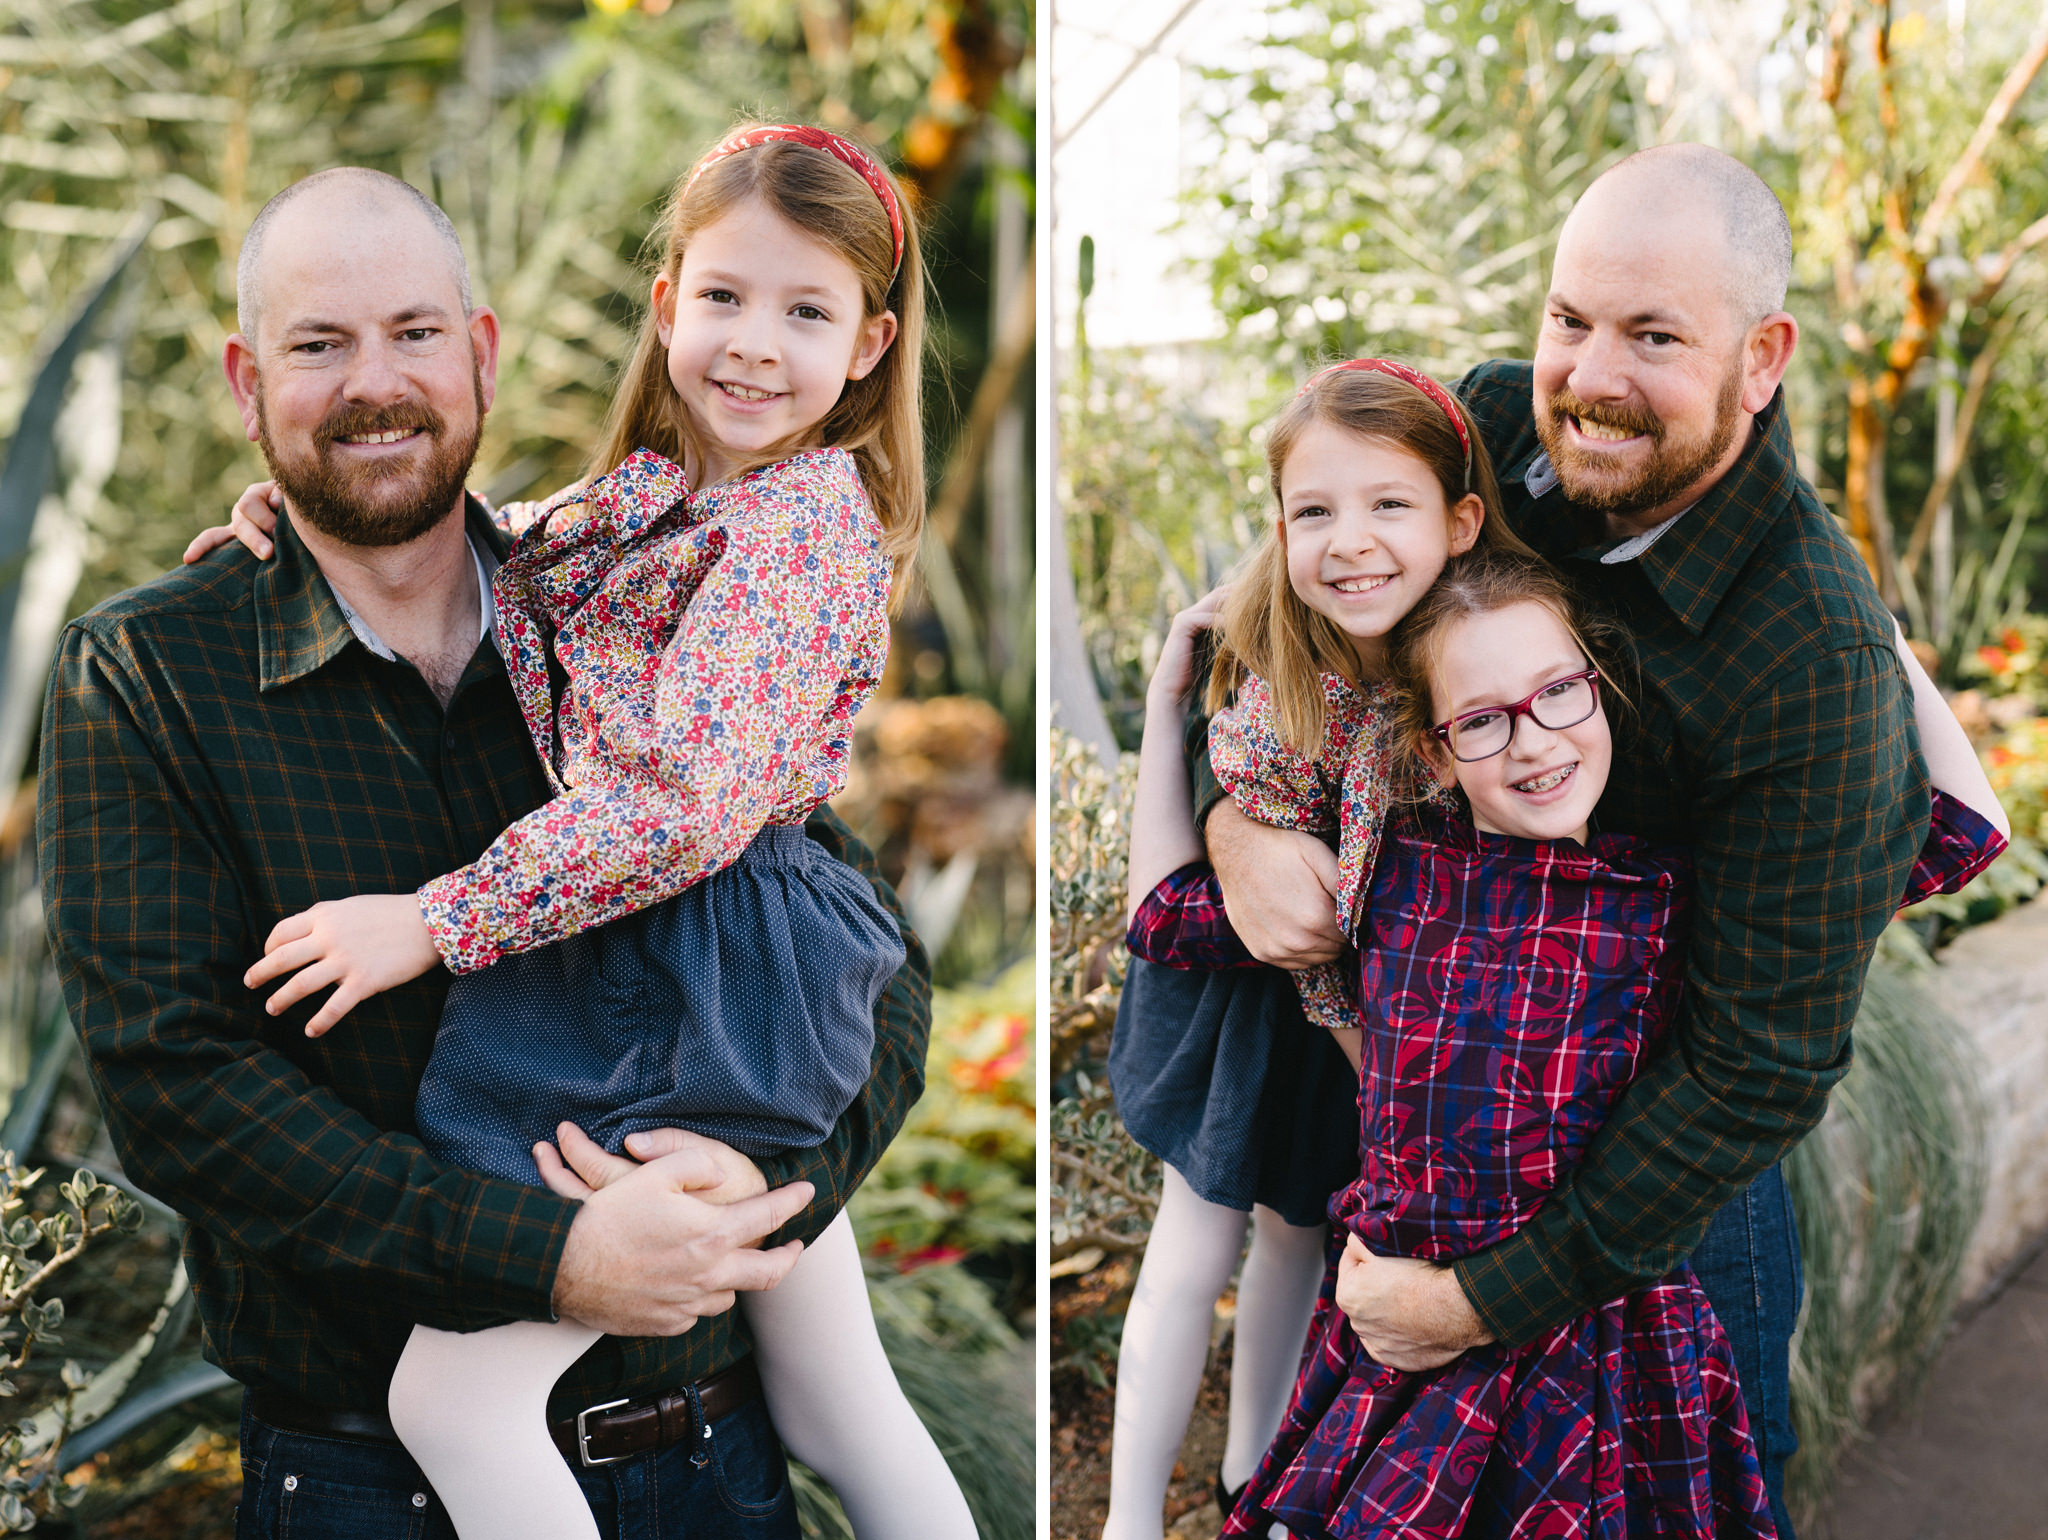 007-rempel-photography-chicago-wedding-inspiration-oak-park-conservatory-family-photo-session-bailey-forest-park-berwin-area-photographers.jpg